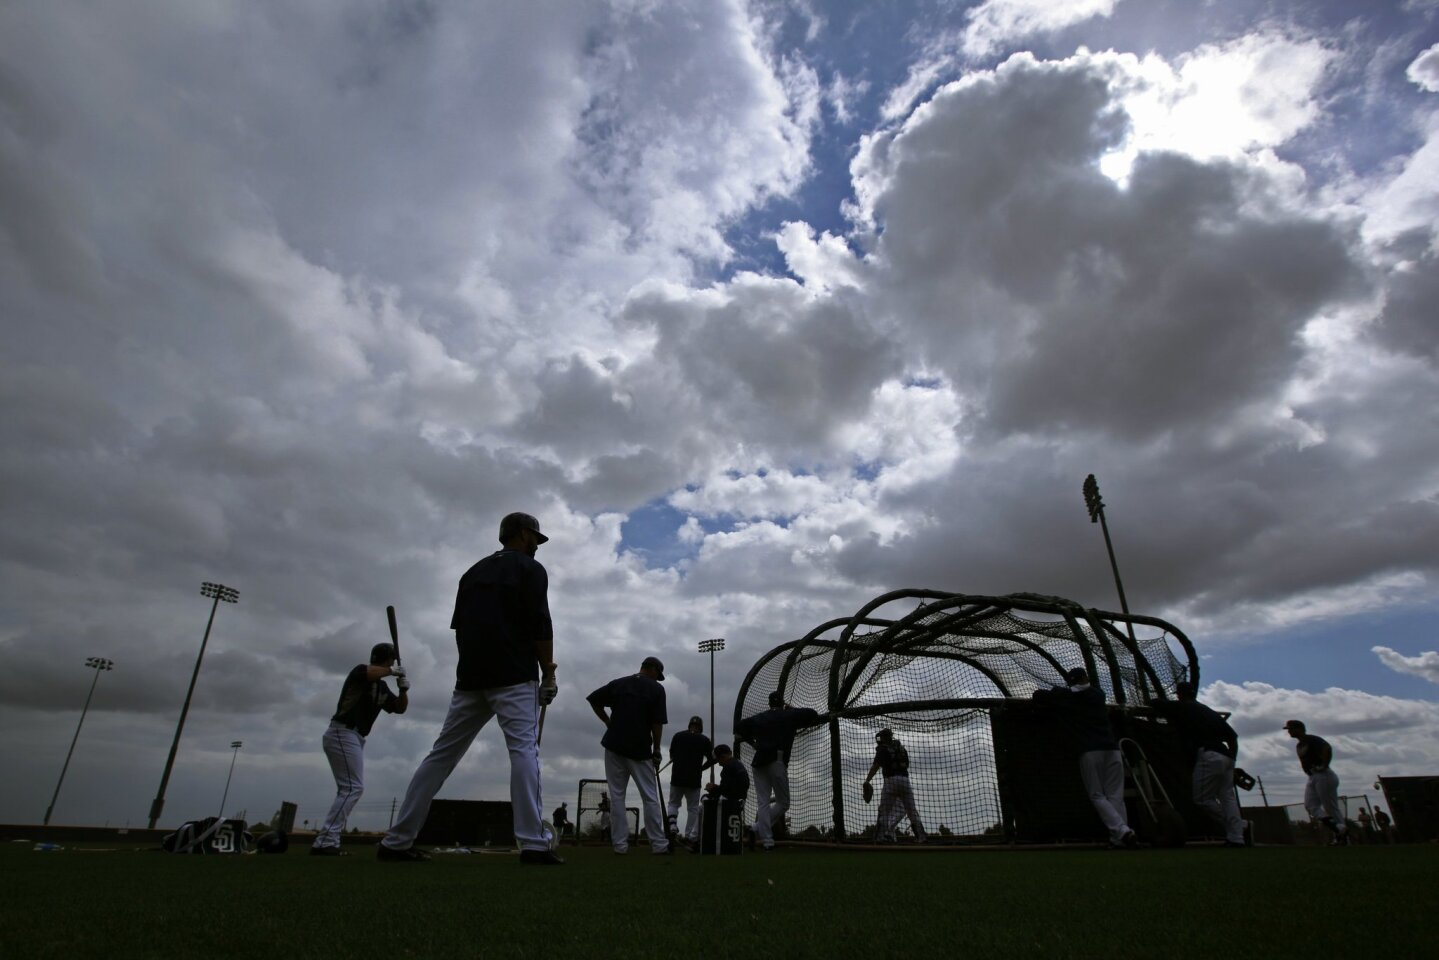 San Diego Padres outfielder Matt Kemp waits to bat at a spring training practice.